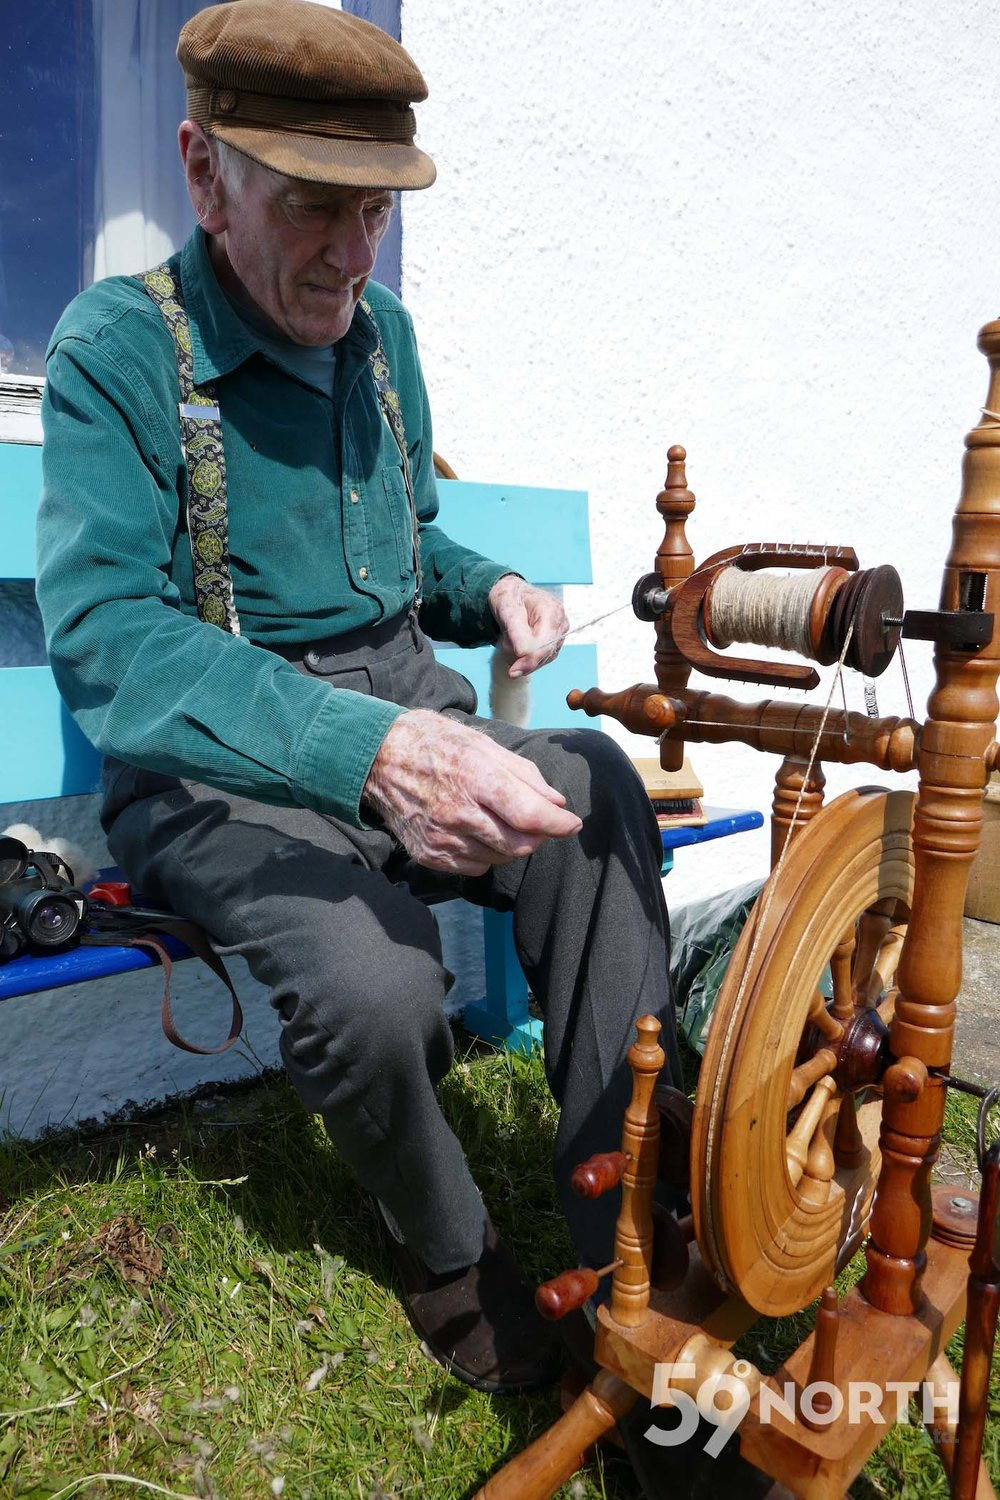 Old sir. Thompson spinning his own yarn. Fair Isle! Leg 8, 2017: Sweden to Scotland 59-north.com